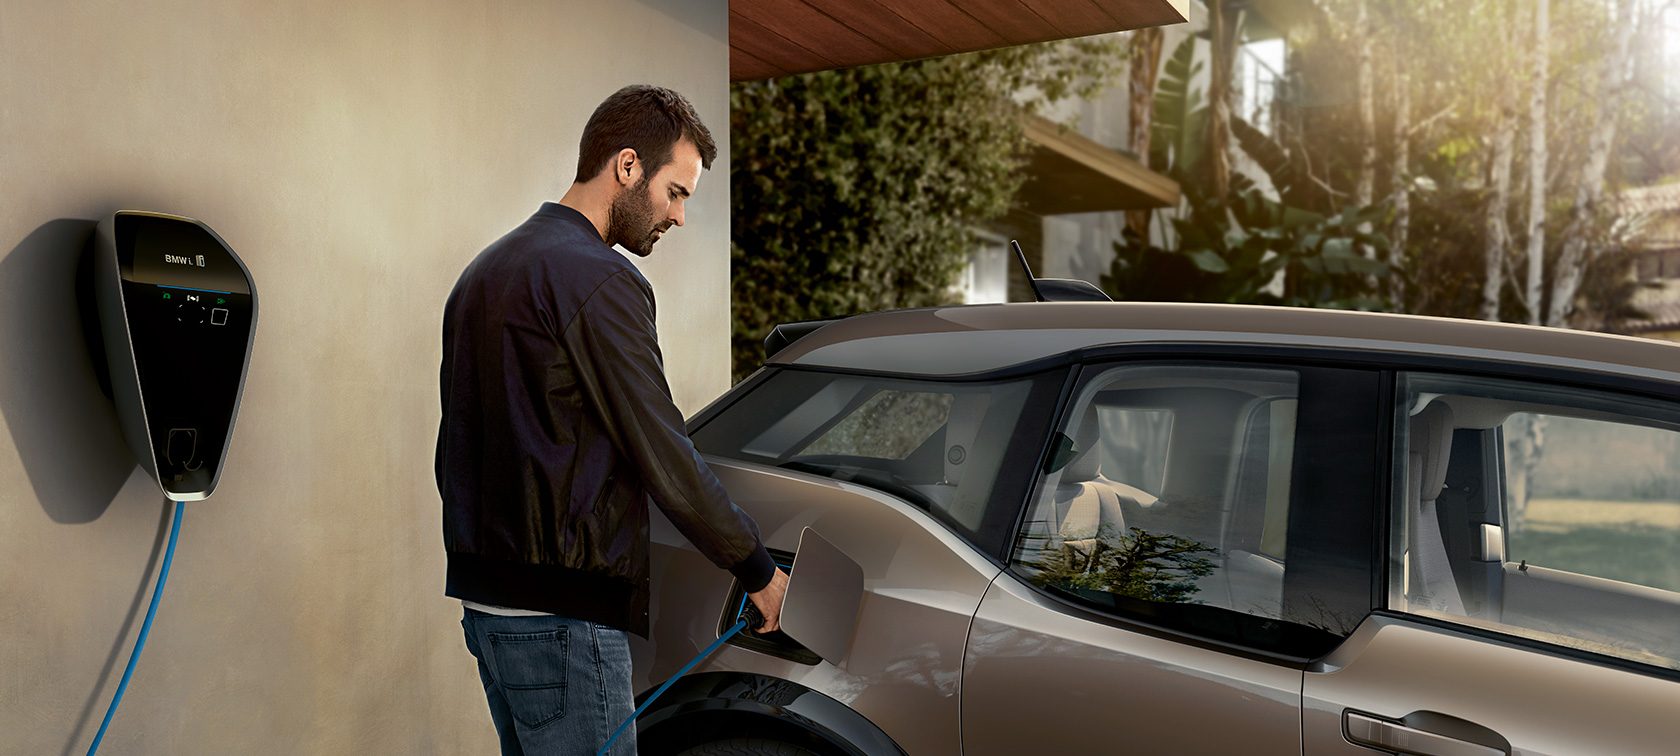 BMW Laden - BMW i3s Mann an Ladestation